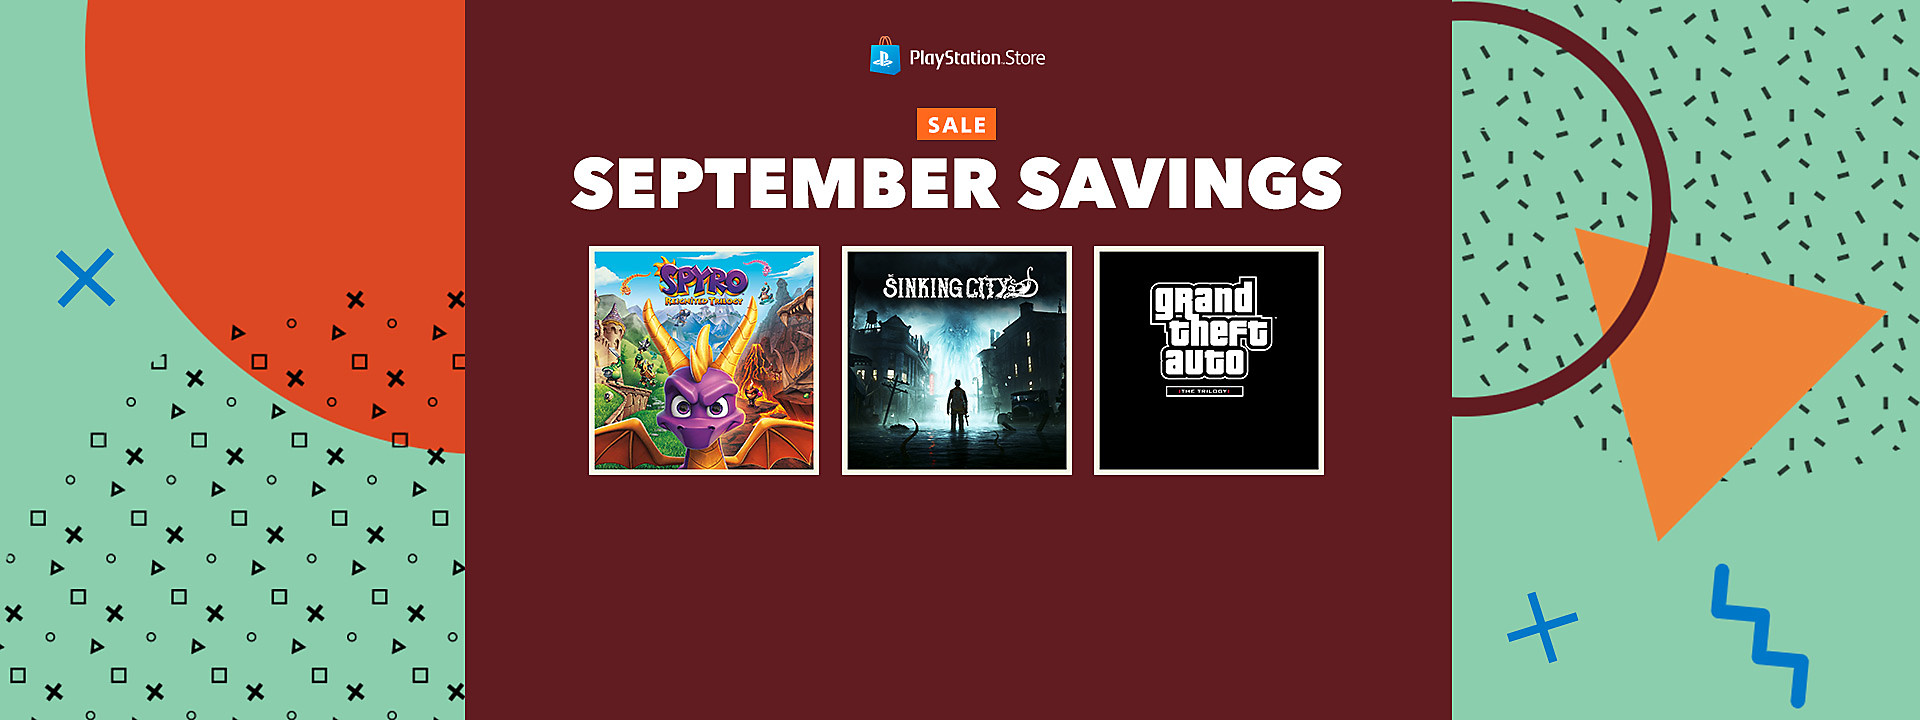 PlayStation Store - September Savings Sale